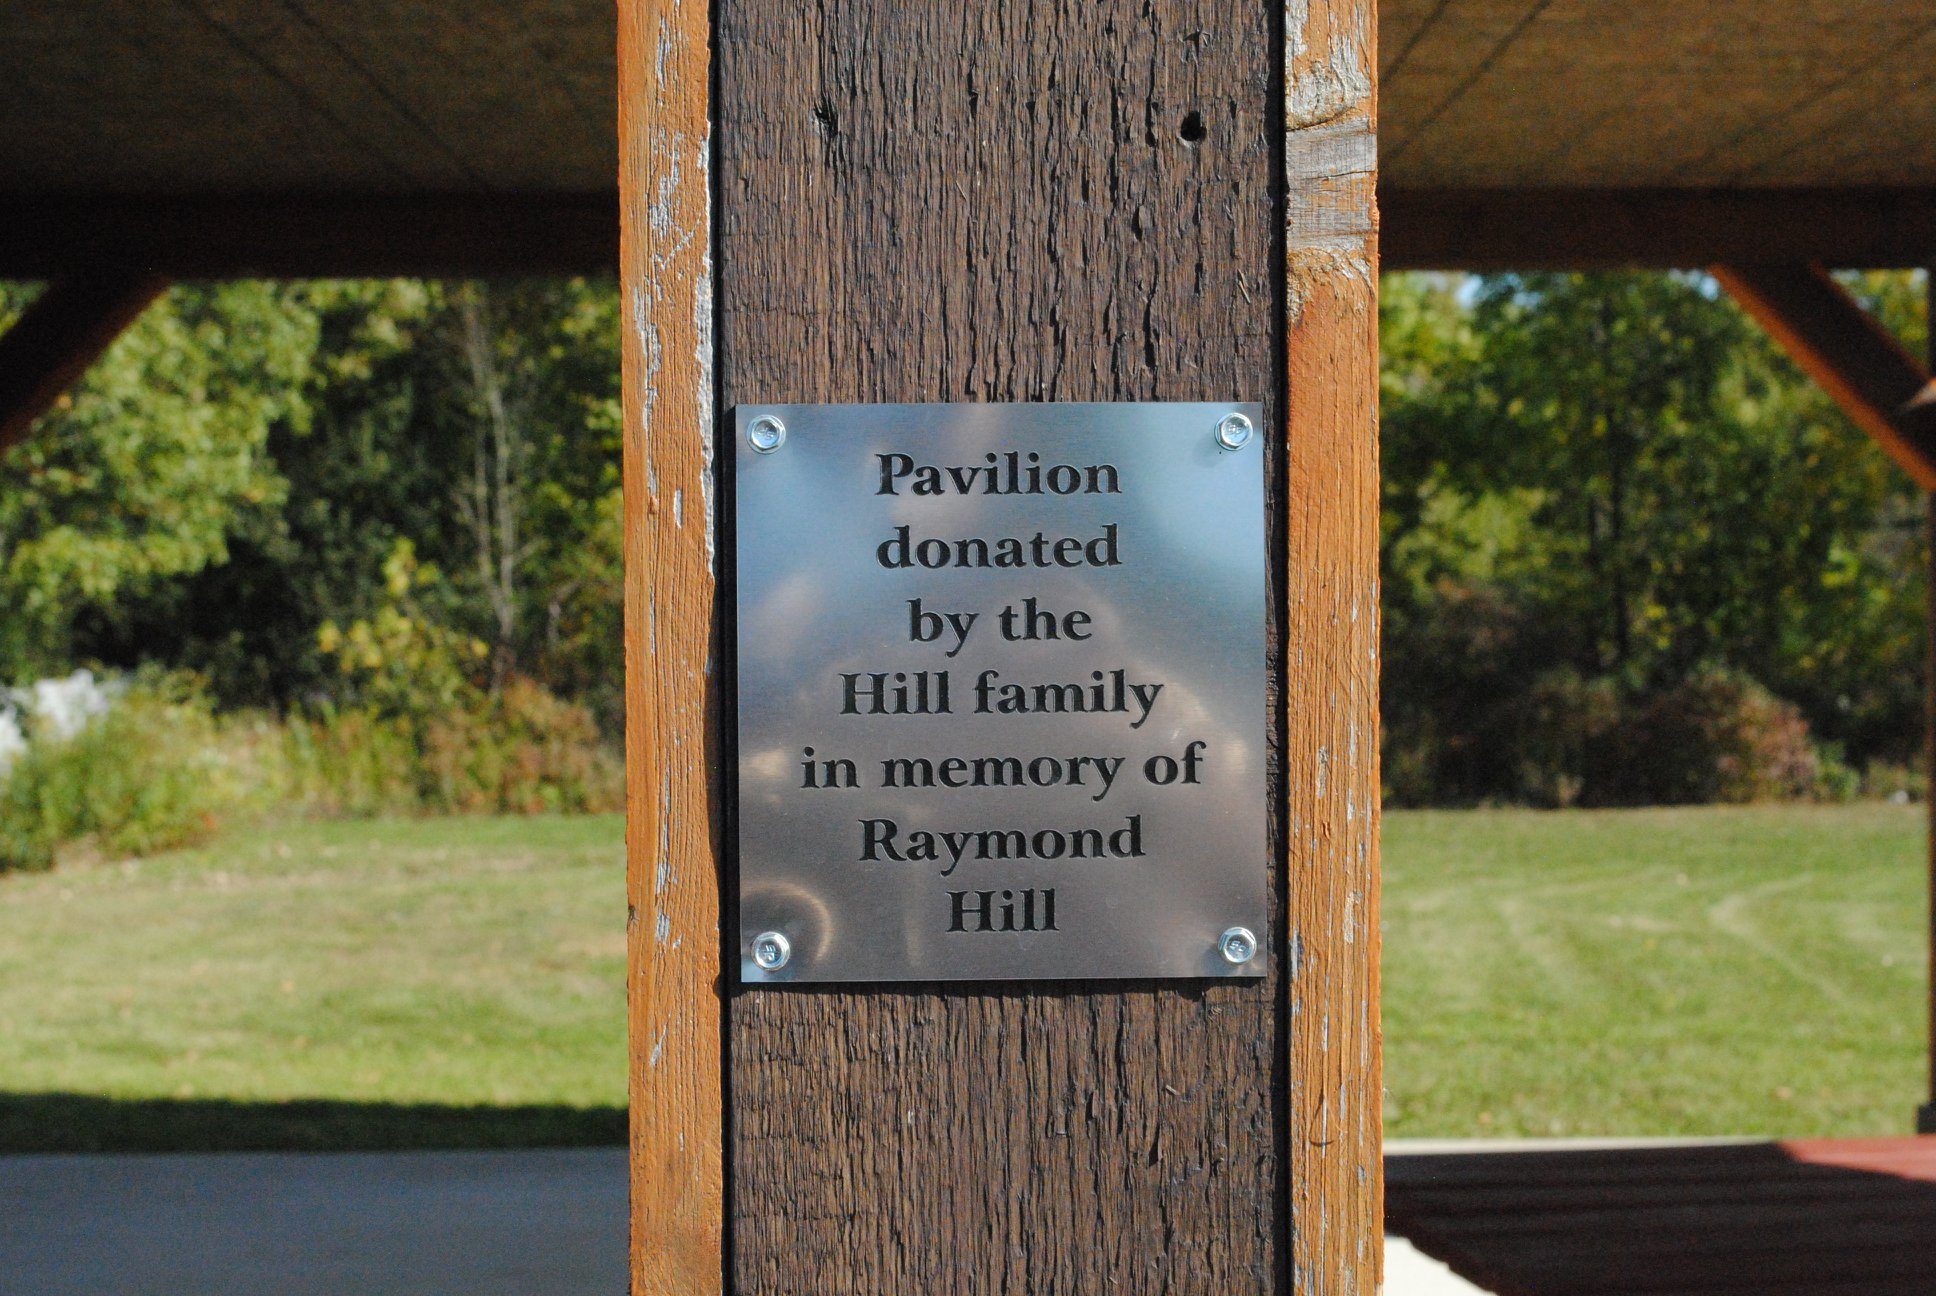 Memorial Park and Pavillion named after veterans